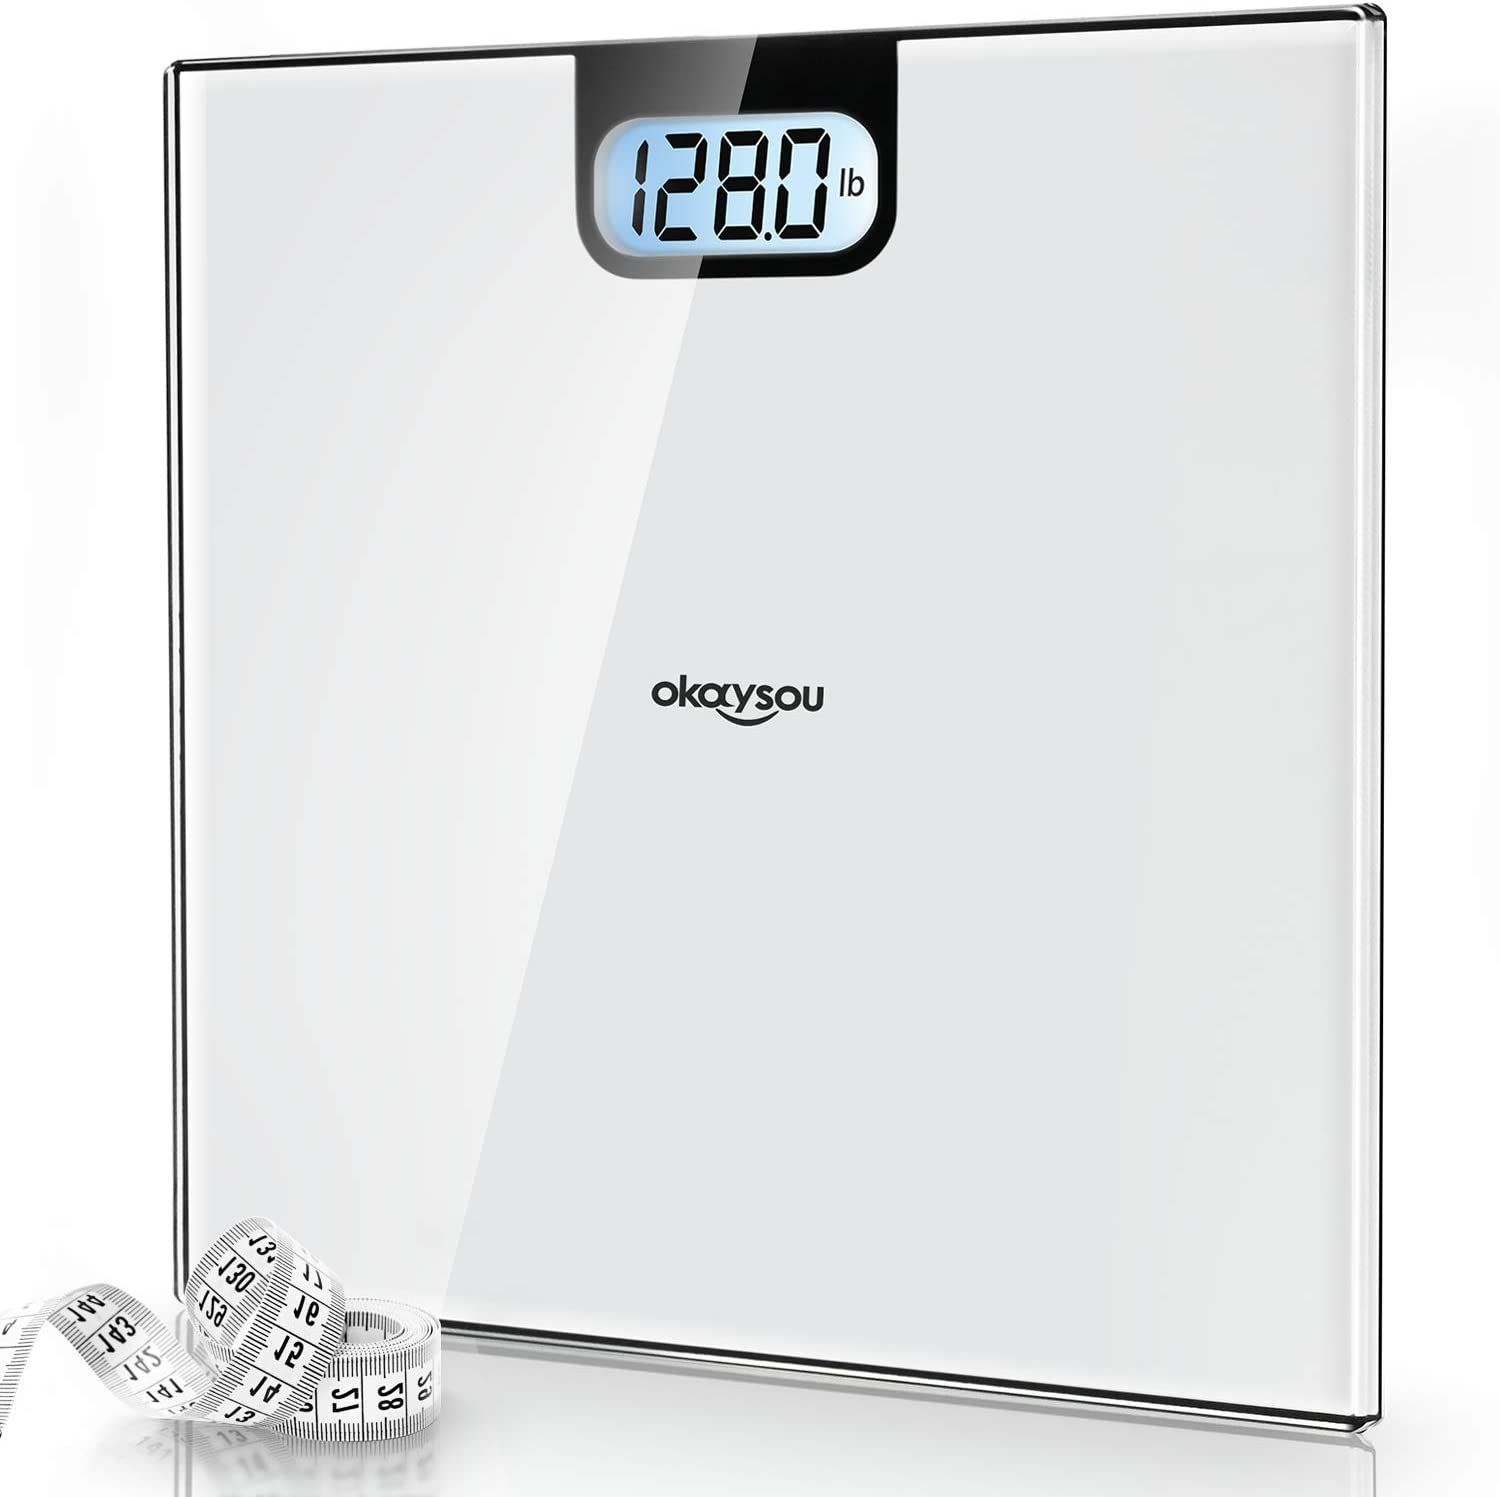 Okaysou Accurate Digital Bathroom Body Weight Scale, All-New Weight Scale with 3.6 Large Backlit LCD Display, 6mm Tempered Glass, Body Tape Measure, Step-on Technology, 400lbs